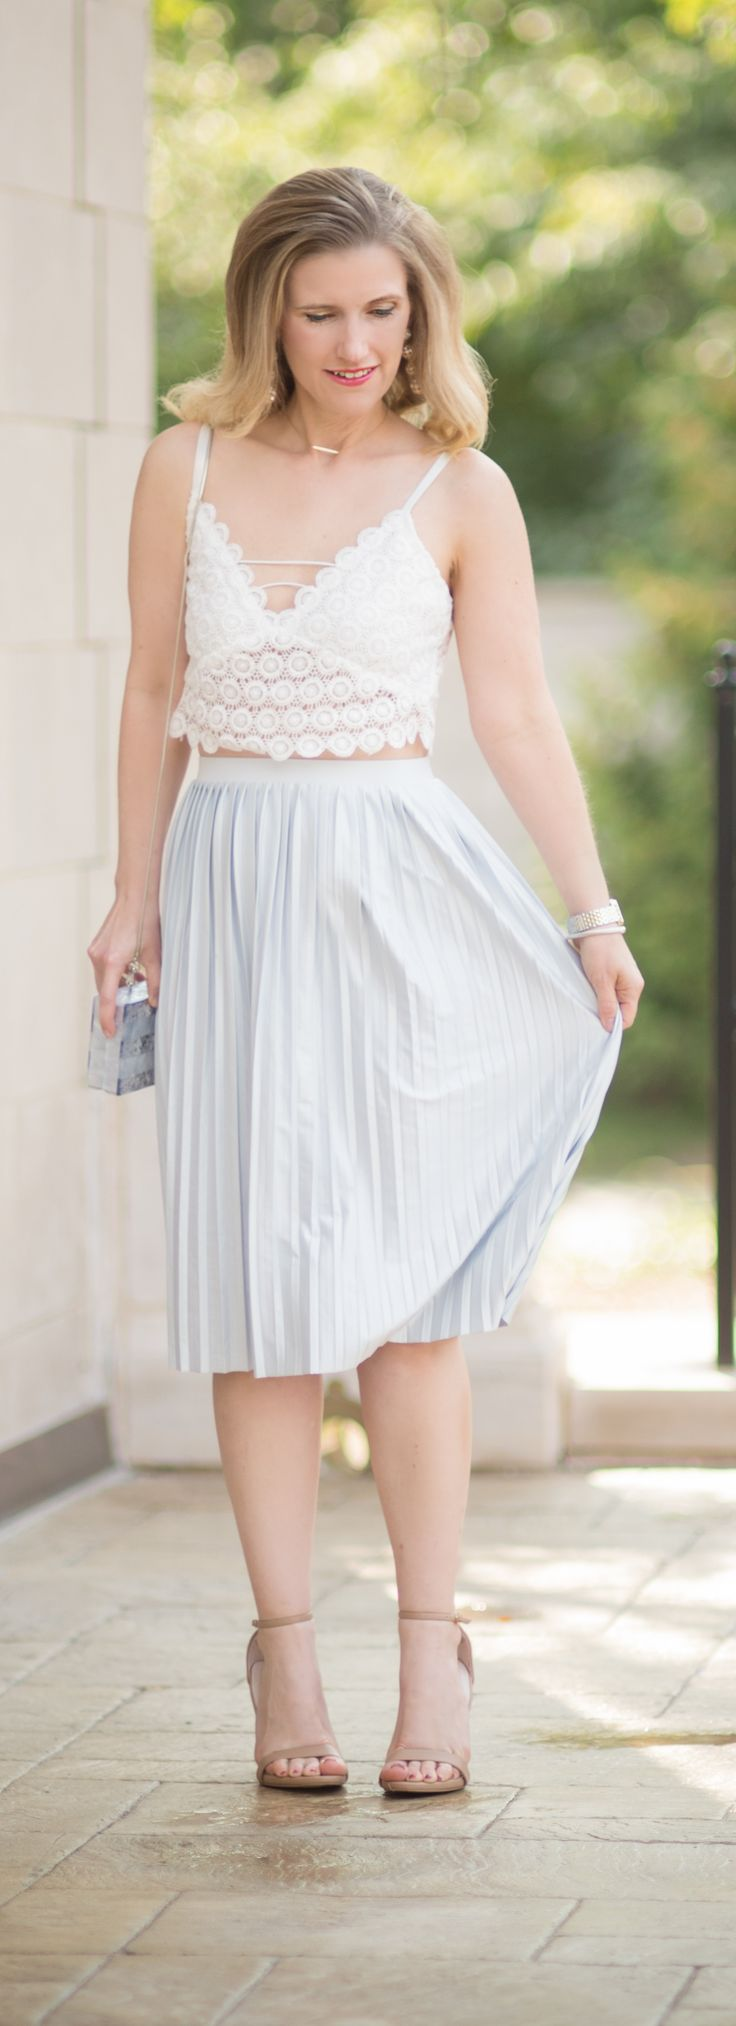 Petite Fashion and Style Blog   Misguided Circle Lace Crop Top   Topshop Pleated Midi Skirt   Milly Acrylic & Glitter Box Clutch   Click to Read More...